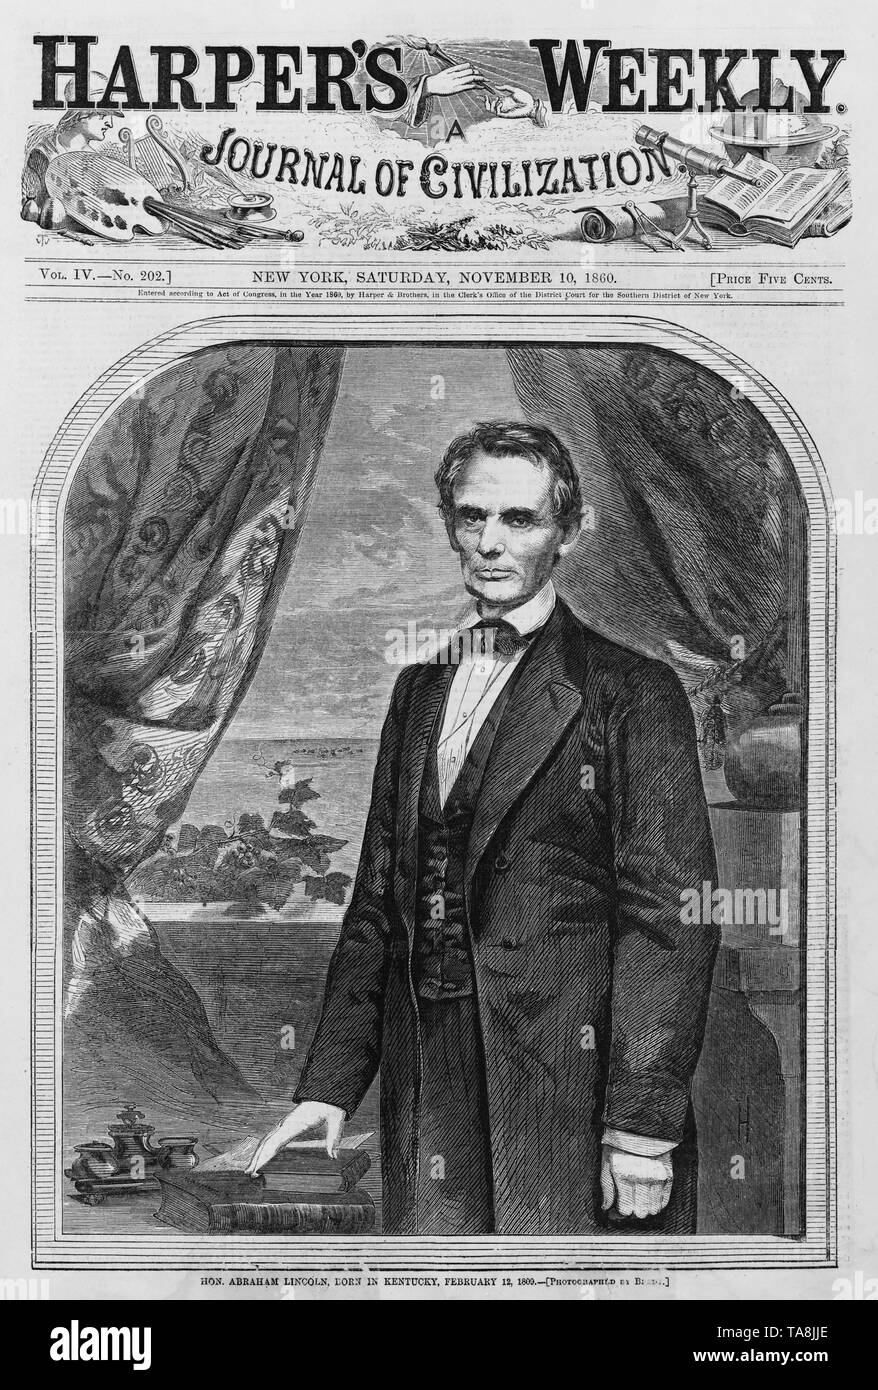 Hon. Abraham Lincoln, Born in Kentucky, February 12, 1809 (Photographed by Brady), Cover of Harper's Weekly Magazine, November 10, 1860 - Stock Image